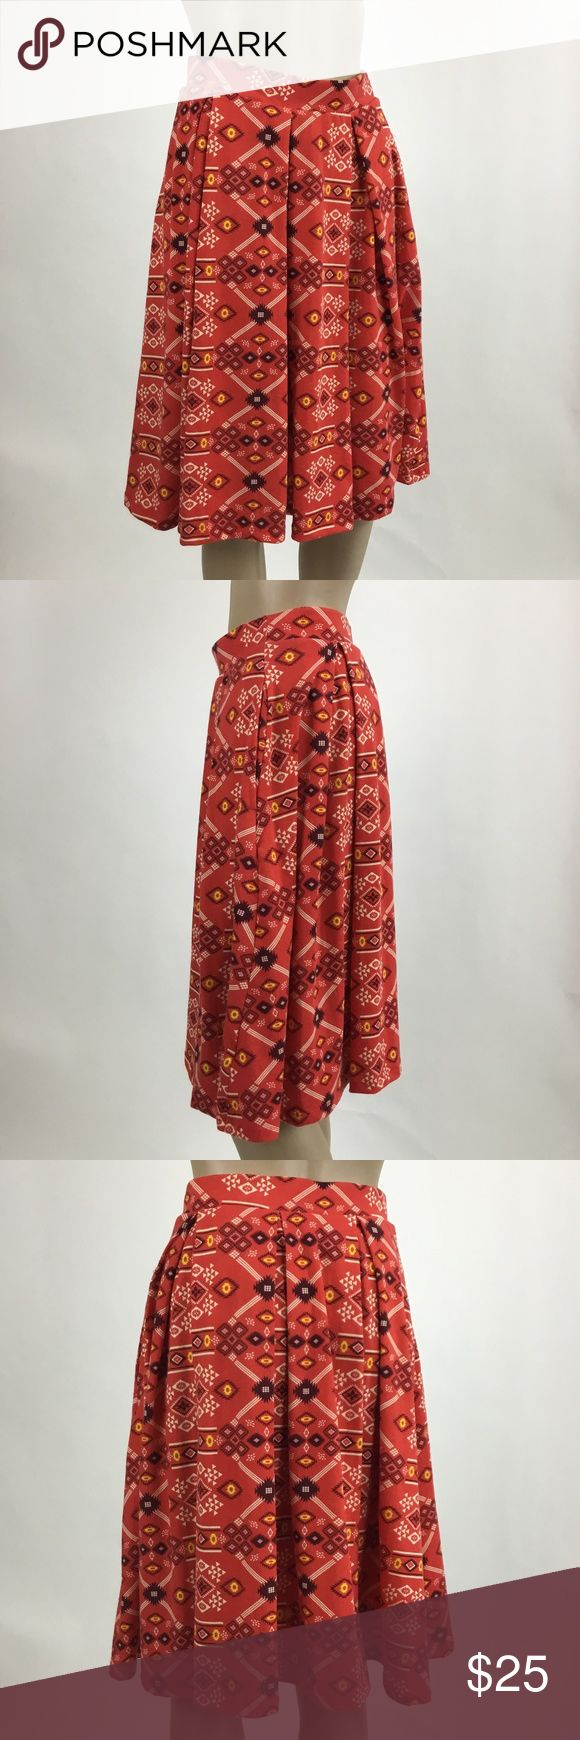 Lularoe Madison Red Bandana Print Full Skirt XS Lularoe Madison Red Bandana Print Full Skirt  Size XS Excellent Condition  Waist Side Seam to Side Seam - 13 inches  Length - 24 inches LuLaRoe Skirts A-Line or Full